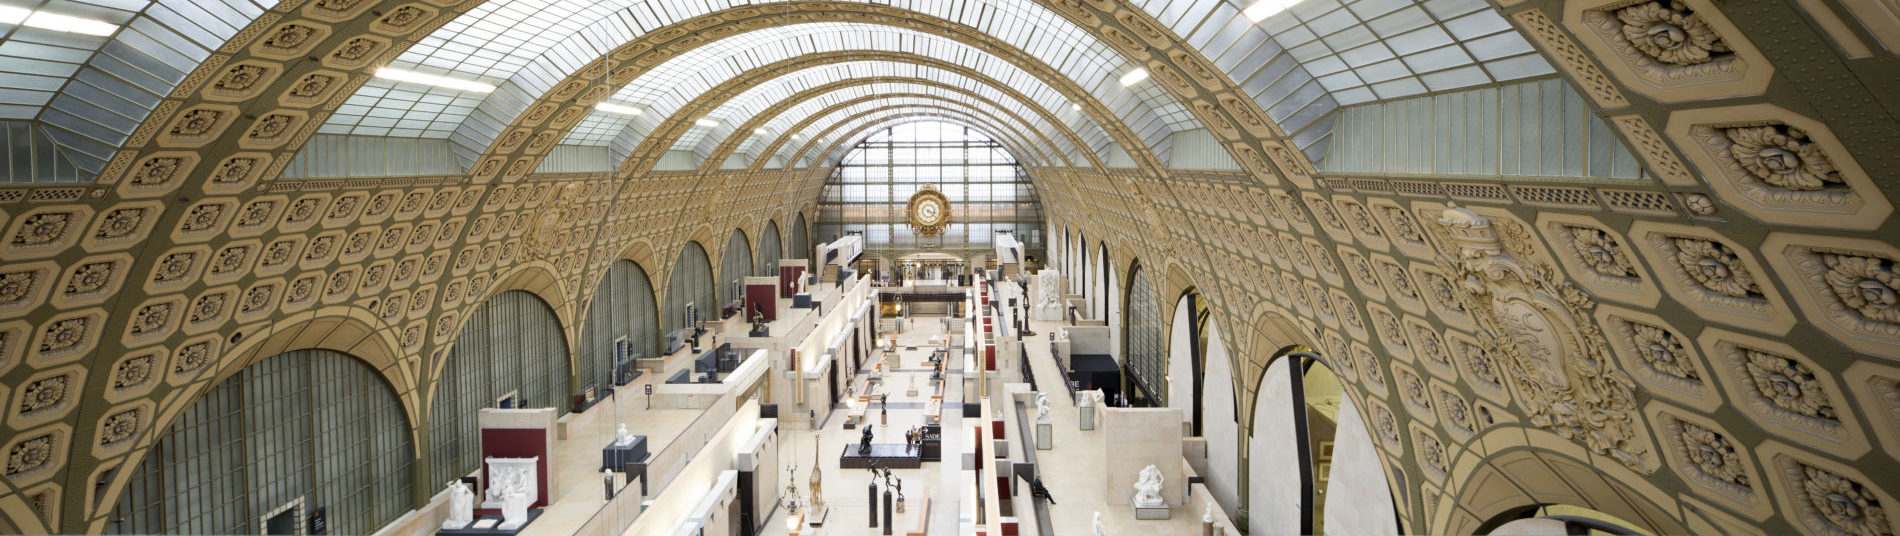 """The Musée d'Orsay Announces """"Orsay Wide Open"""" Project"""